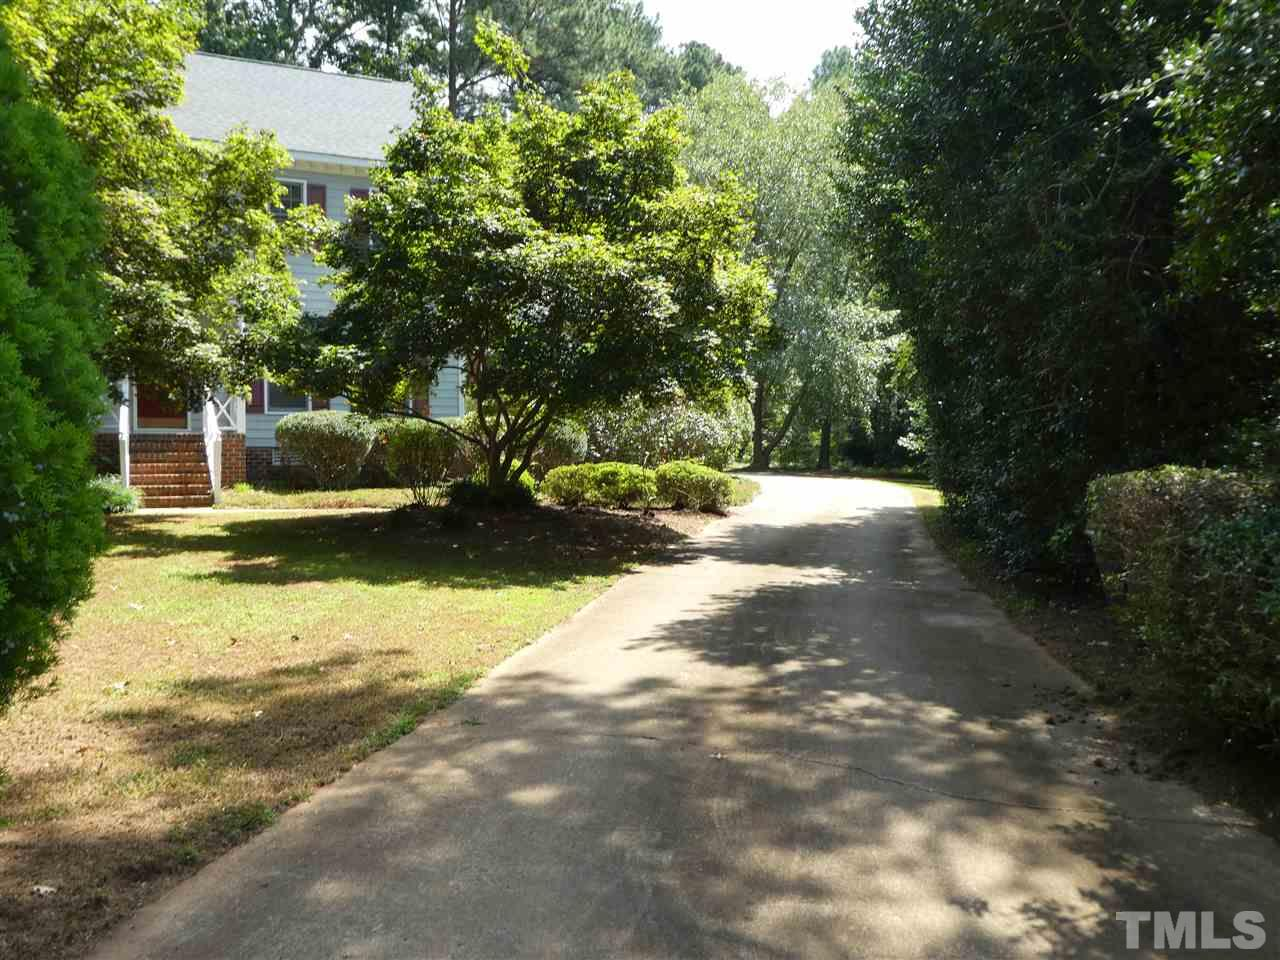 Distinctively remodeled 2-story Lochmere home w/side entry garage on .47 acre private cul-de-sac lot.Updates include granite kitchen counter tops, wet bar, kitchen cabinets w/stained alike glass,SS appliances, new Baths,Jacuzzi tub in hall bath, dual shower head in master bath, hardwood on 1st floor except Living Rm, back stairs to bonus RM, oversized deck w/patio, fresh paint, new carpet. Enjoy Lochmere Swim & Tennis Club, 3 lakes & 10 miles of walking trails.Semi-private golf club.close to everything.